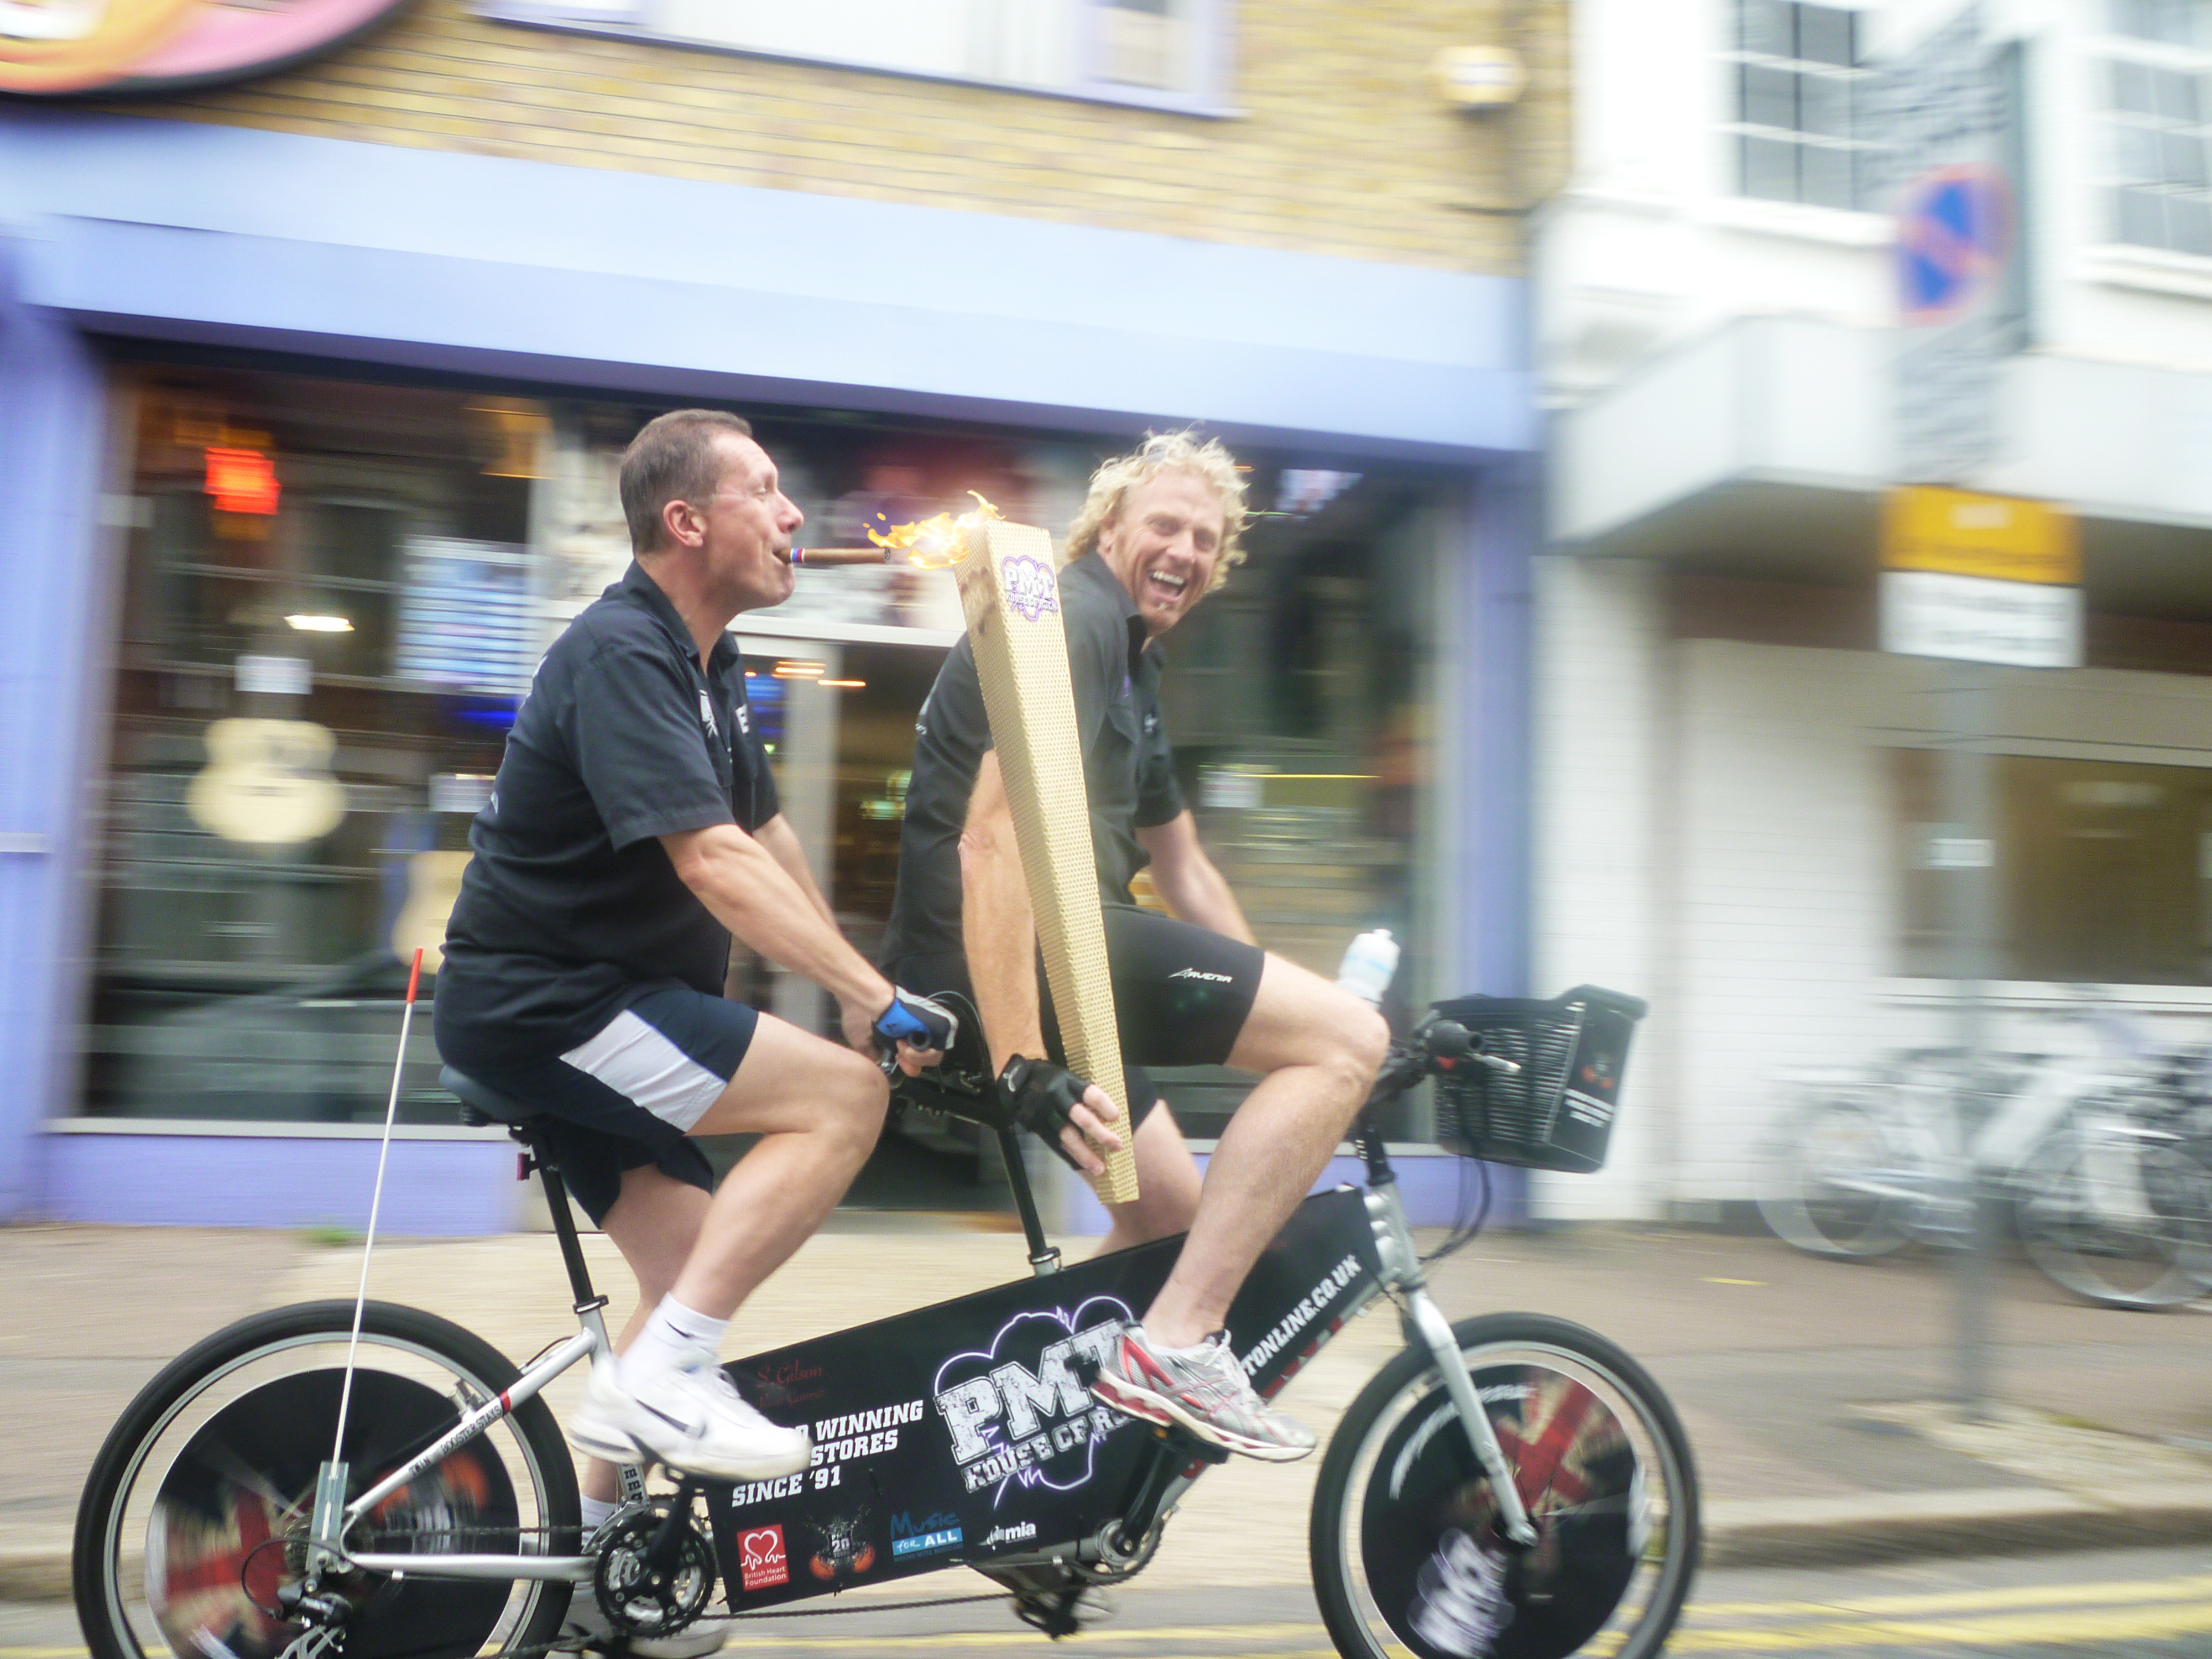 Local businessmen Simon Gilson and Terry Hope, of PMT, a leading musical instrument retailer headquartered in Southend, claimed to have 'found' the torch while out on a training session for a charity bike ride